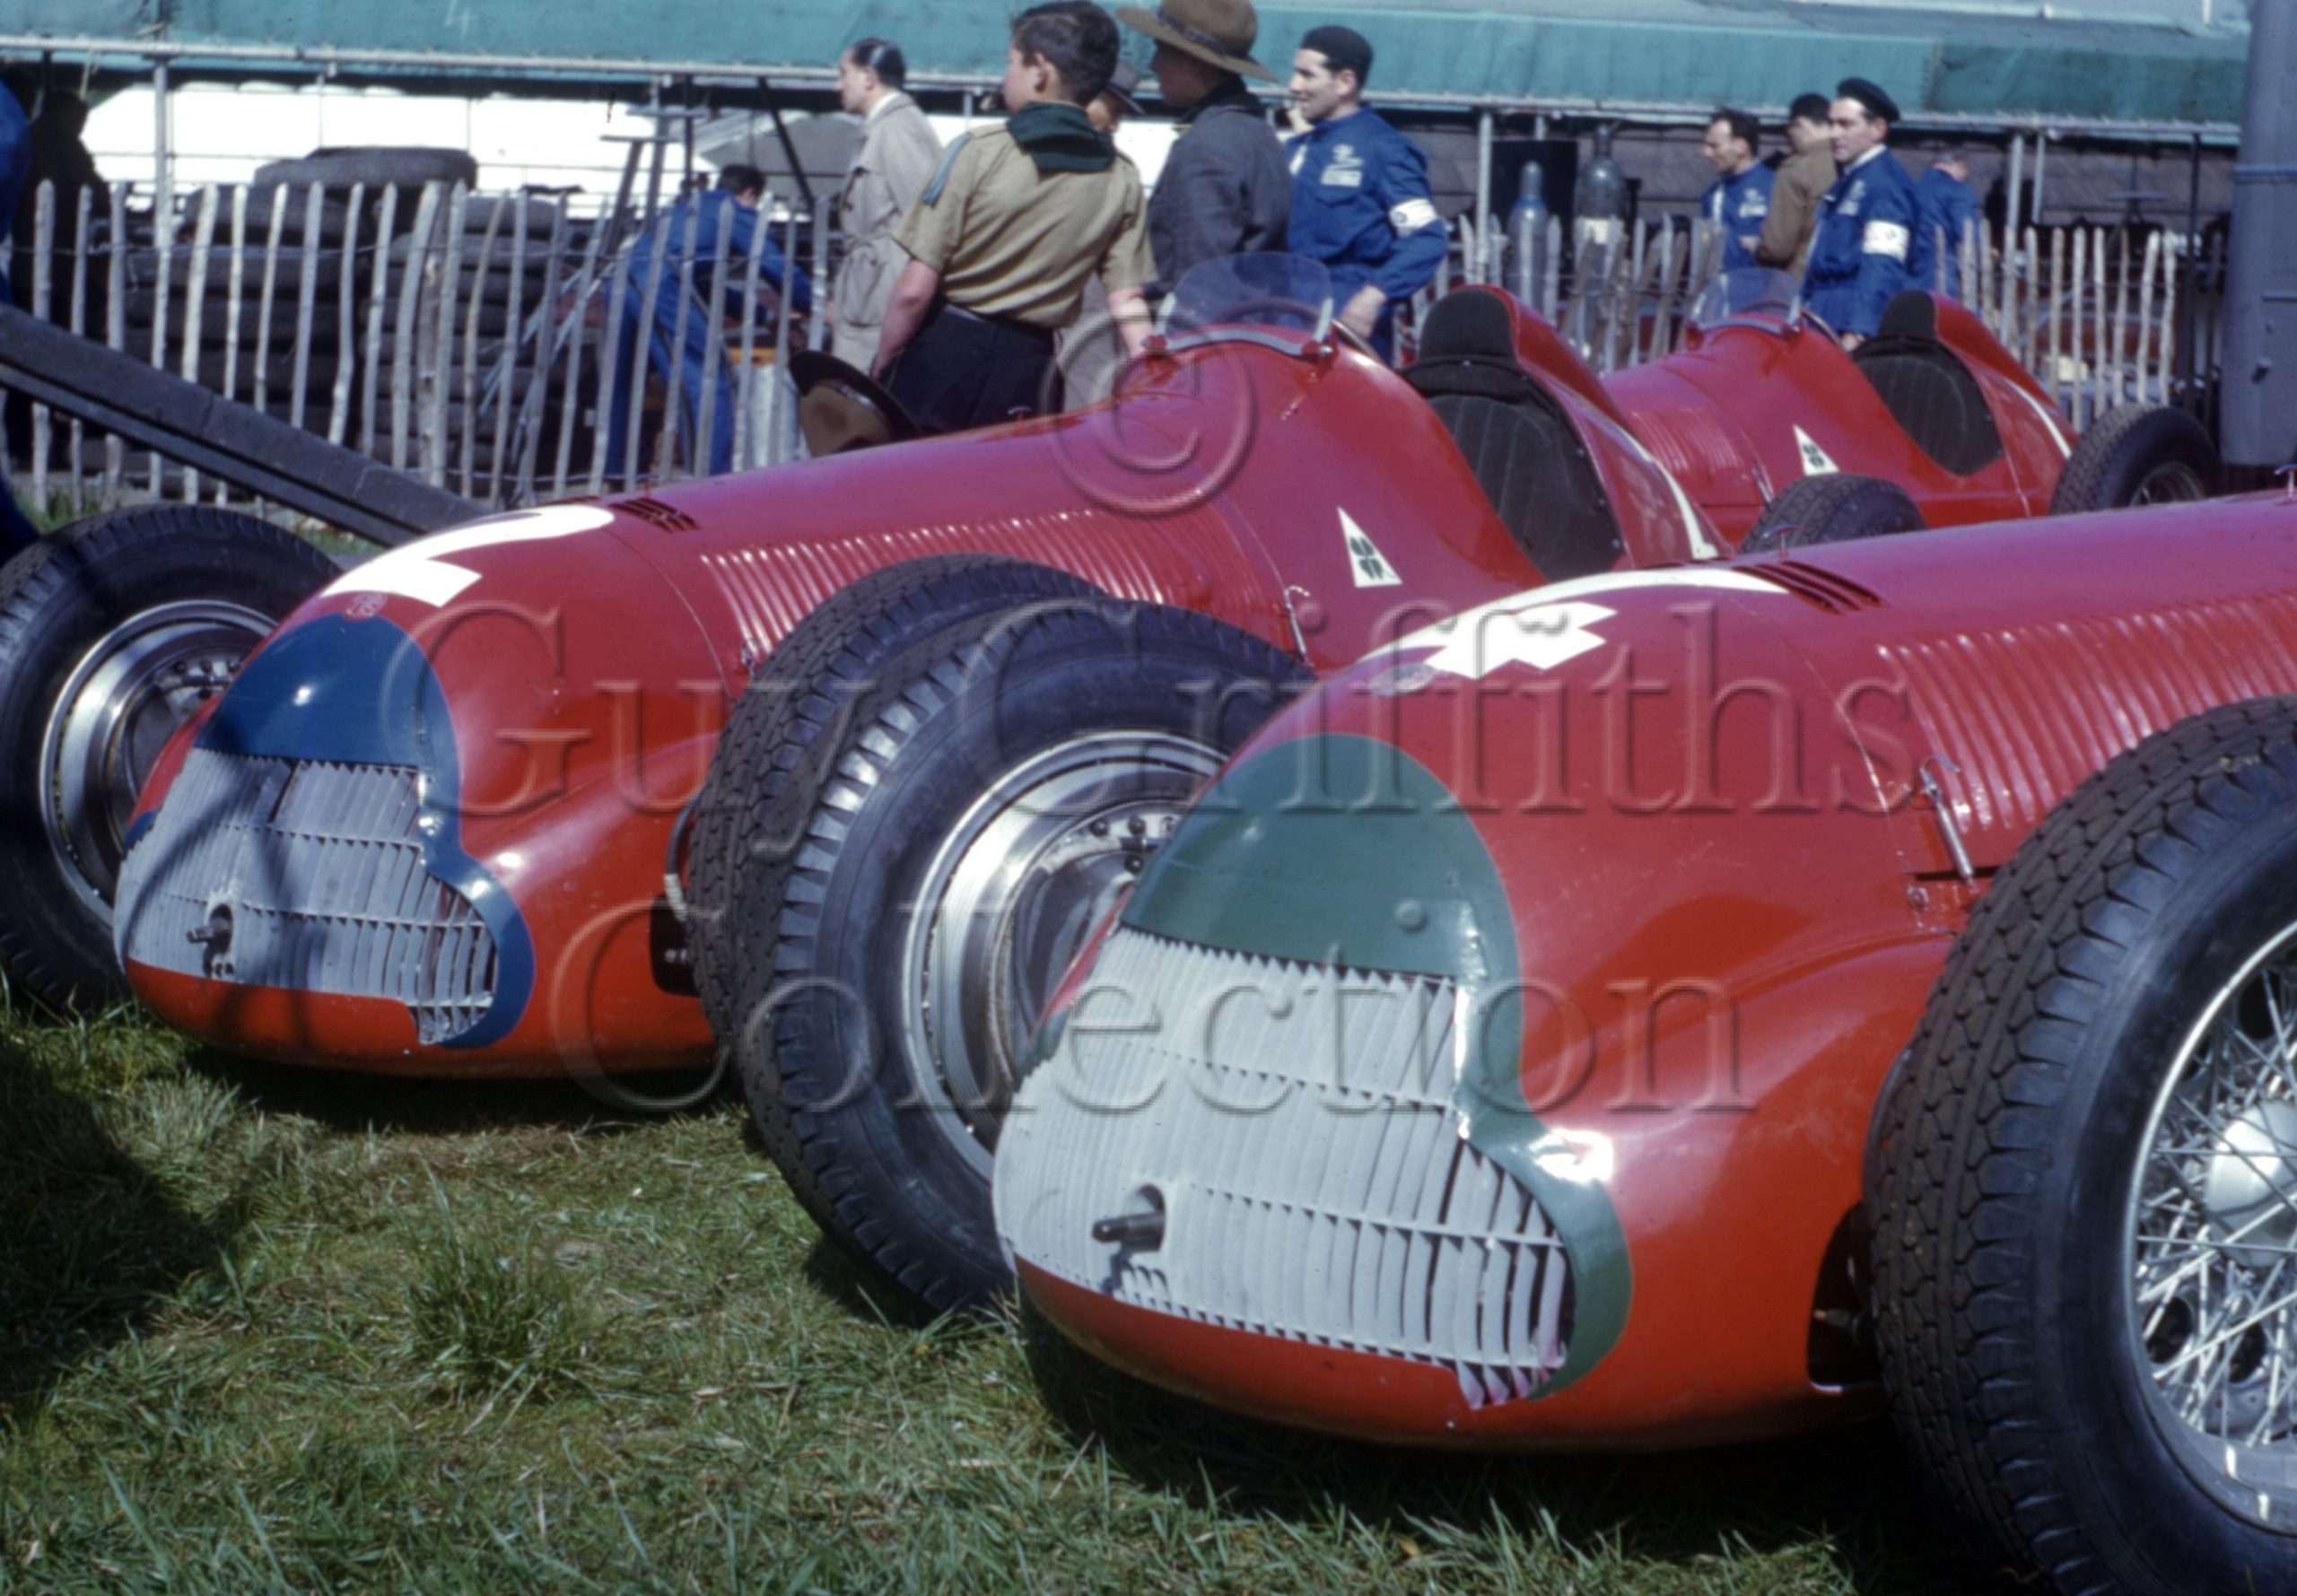 C-3-4–Alfa-Romeo-158–Silverstone–13-05-1950.jpg - Guy Griffiths Collection